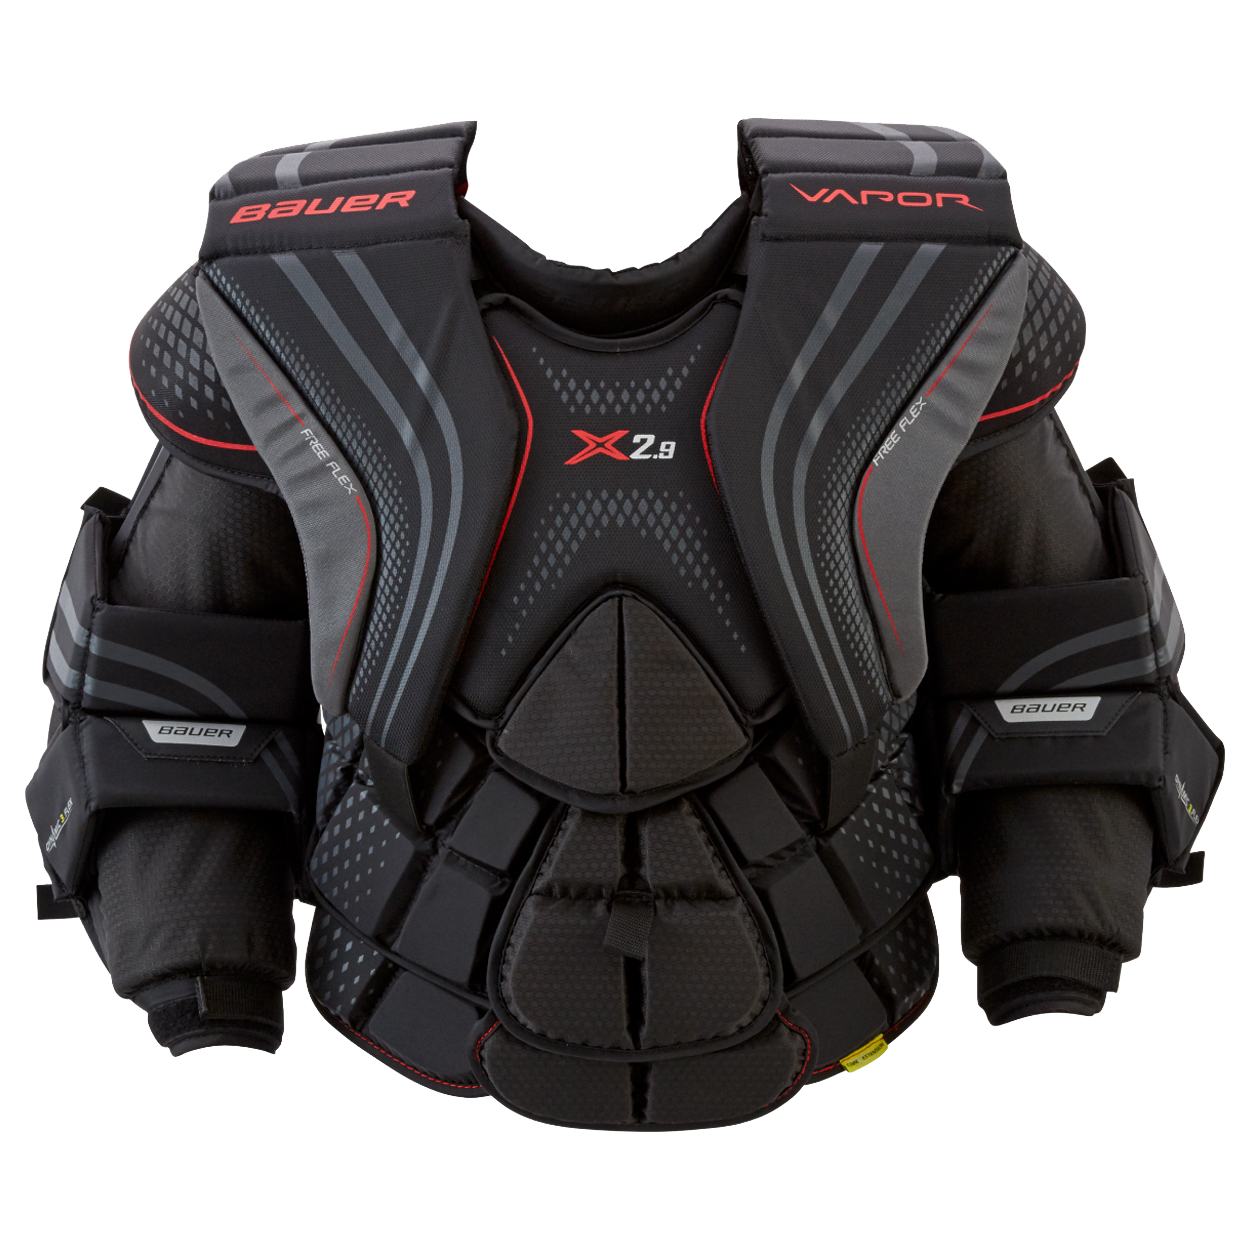 Vapor X2.9 Chest Protector Senior,,Medium